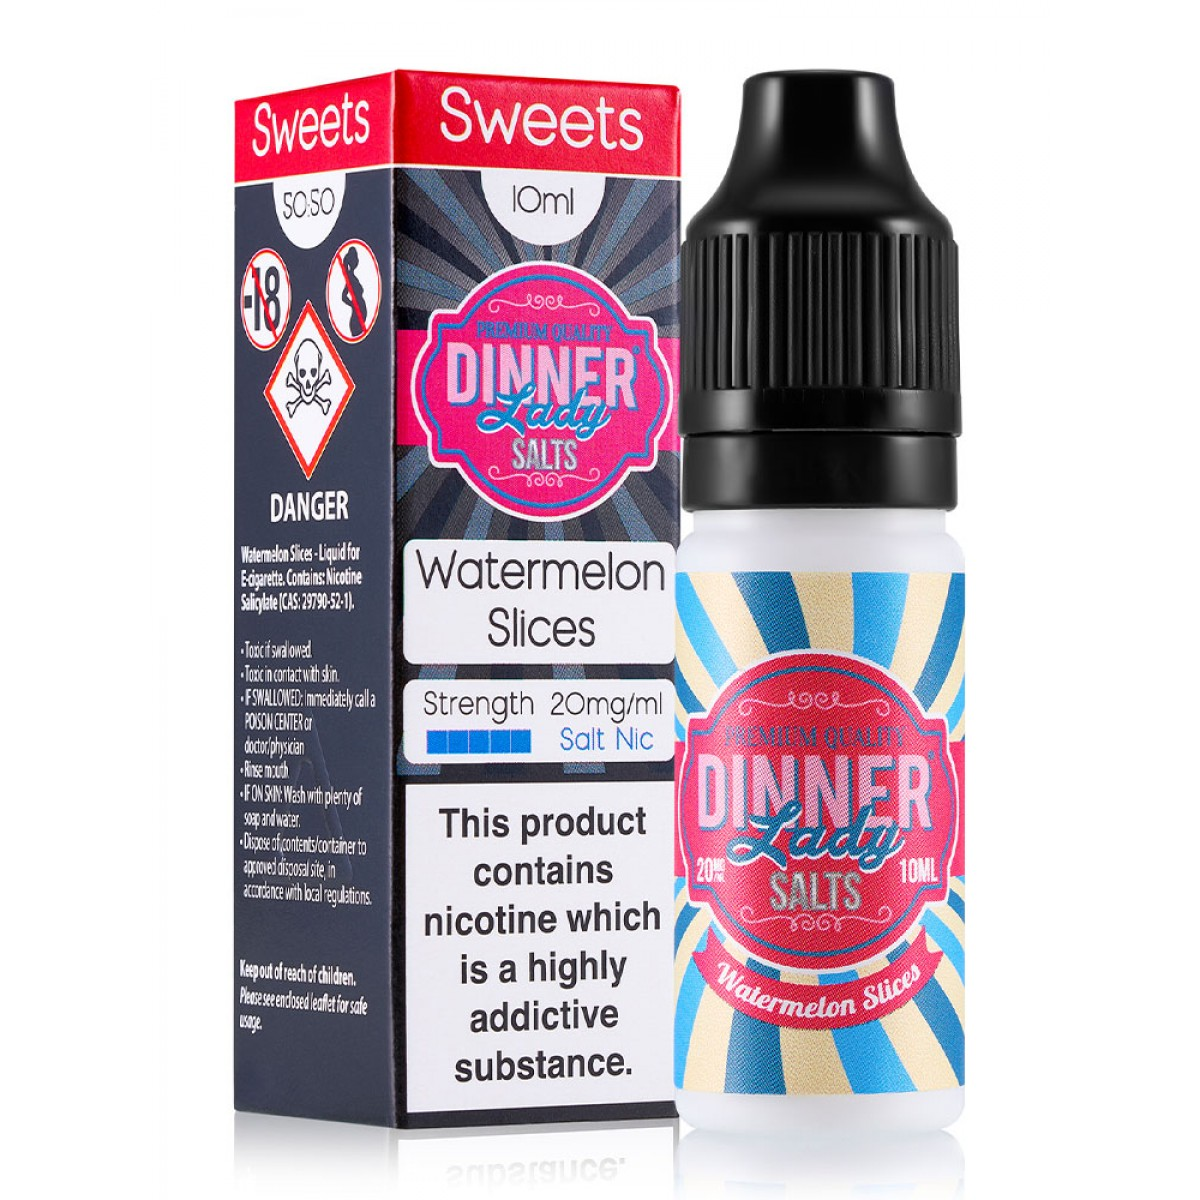 WATERMELON SLICES BY DINNER LADY SALTS